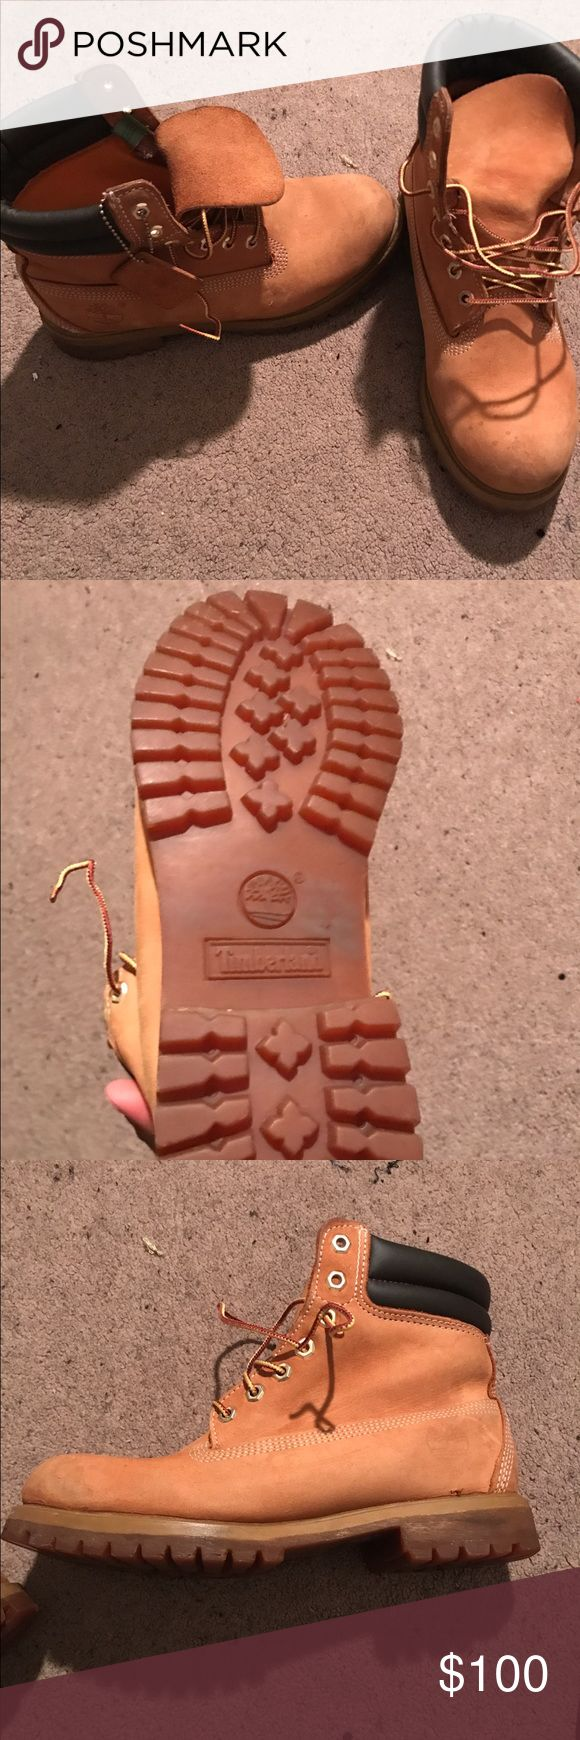 Wheat timberland boots Wheat tims still in great condition size 9 Timberland Shoes Boots